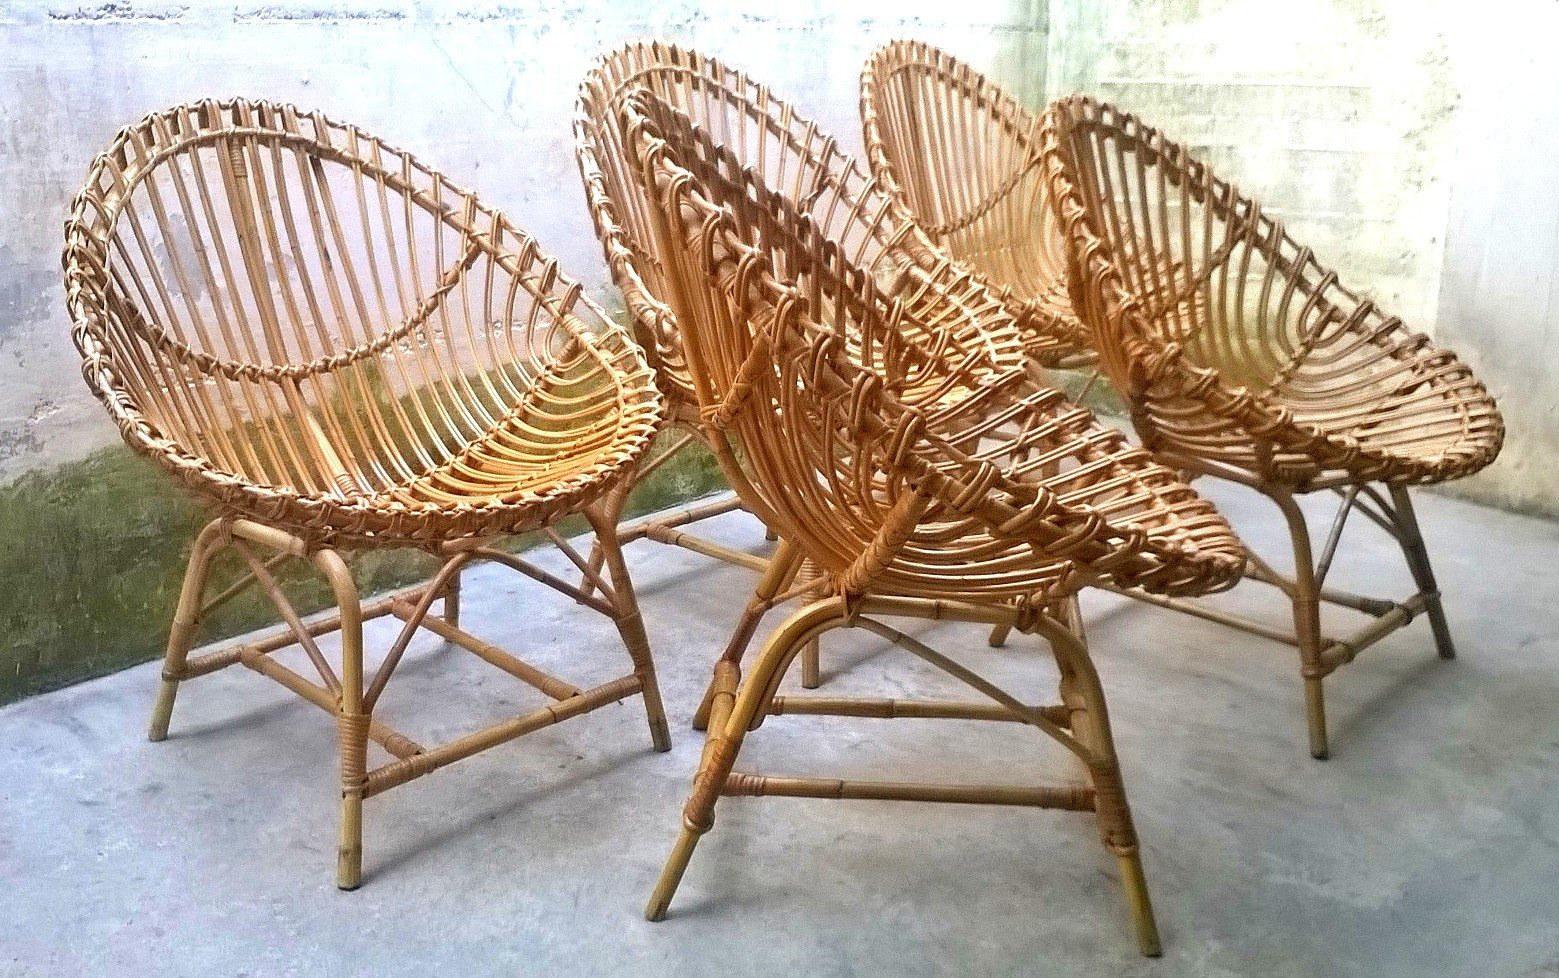 Egg Shaped Chairs Italian Rattan Egg Shaped Chairs 1950s Set Of 5 For Sale